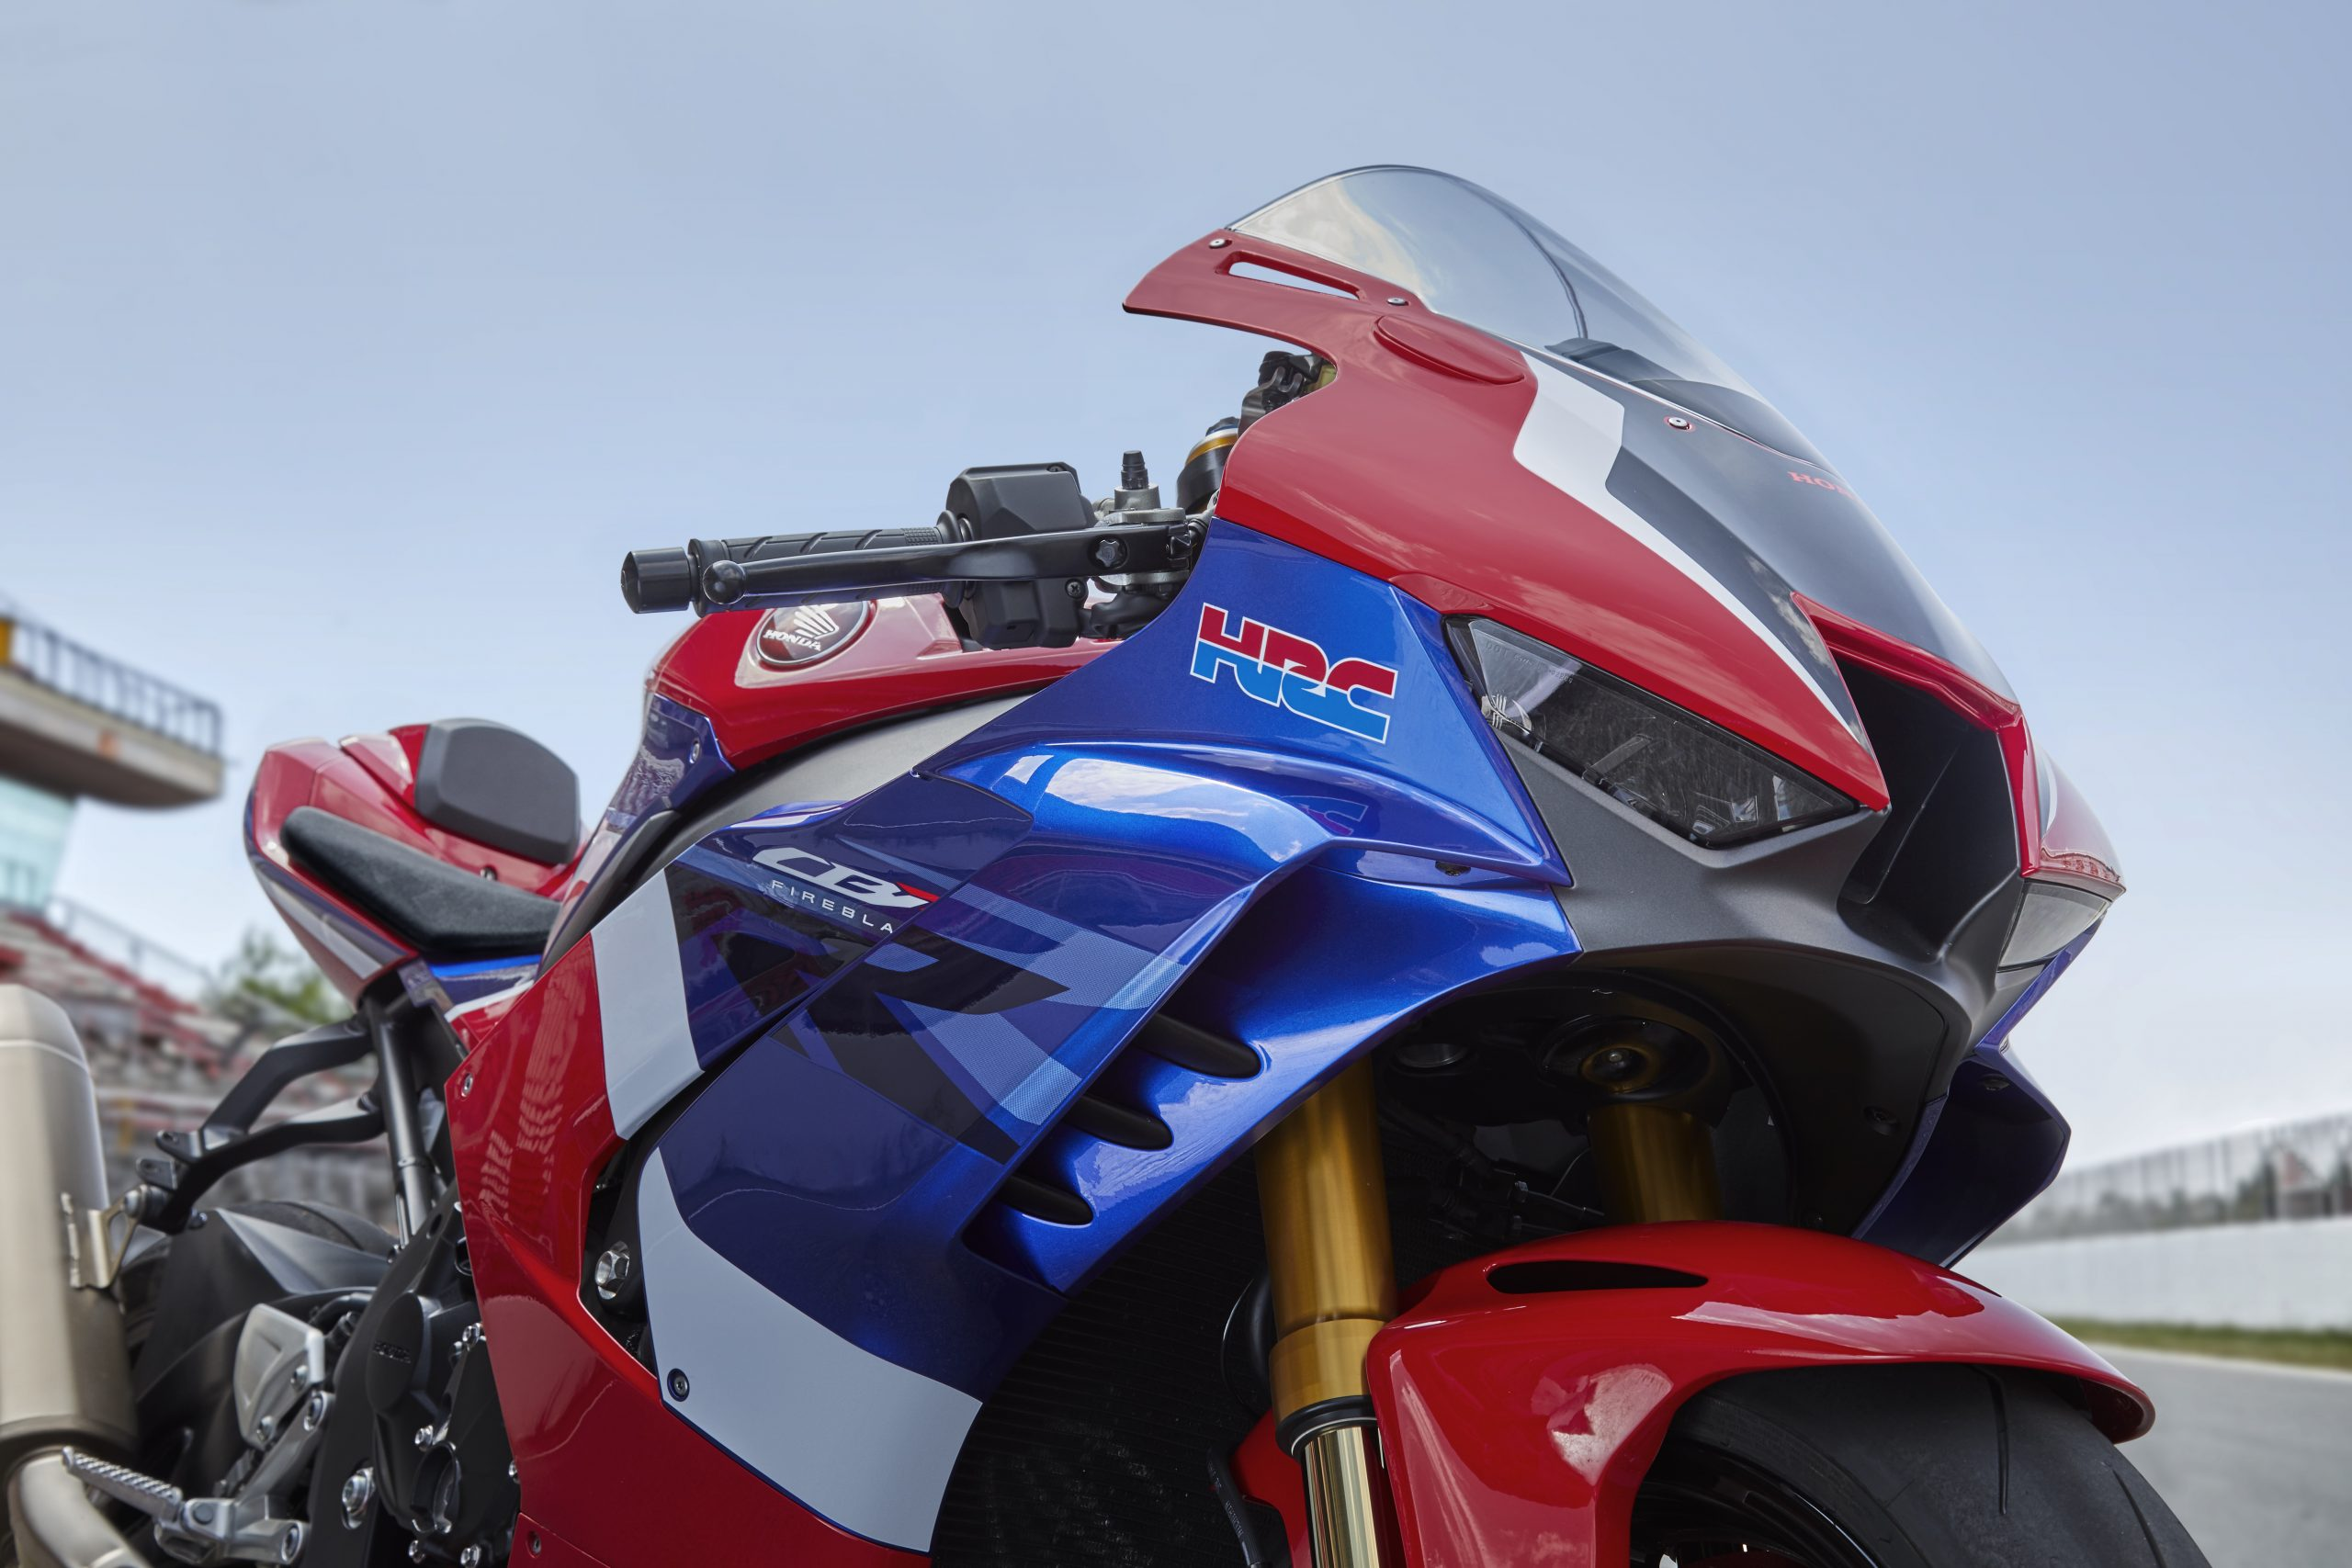 20YM_CBR1000RR-R_SP_Location_06_0119